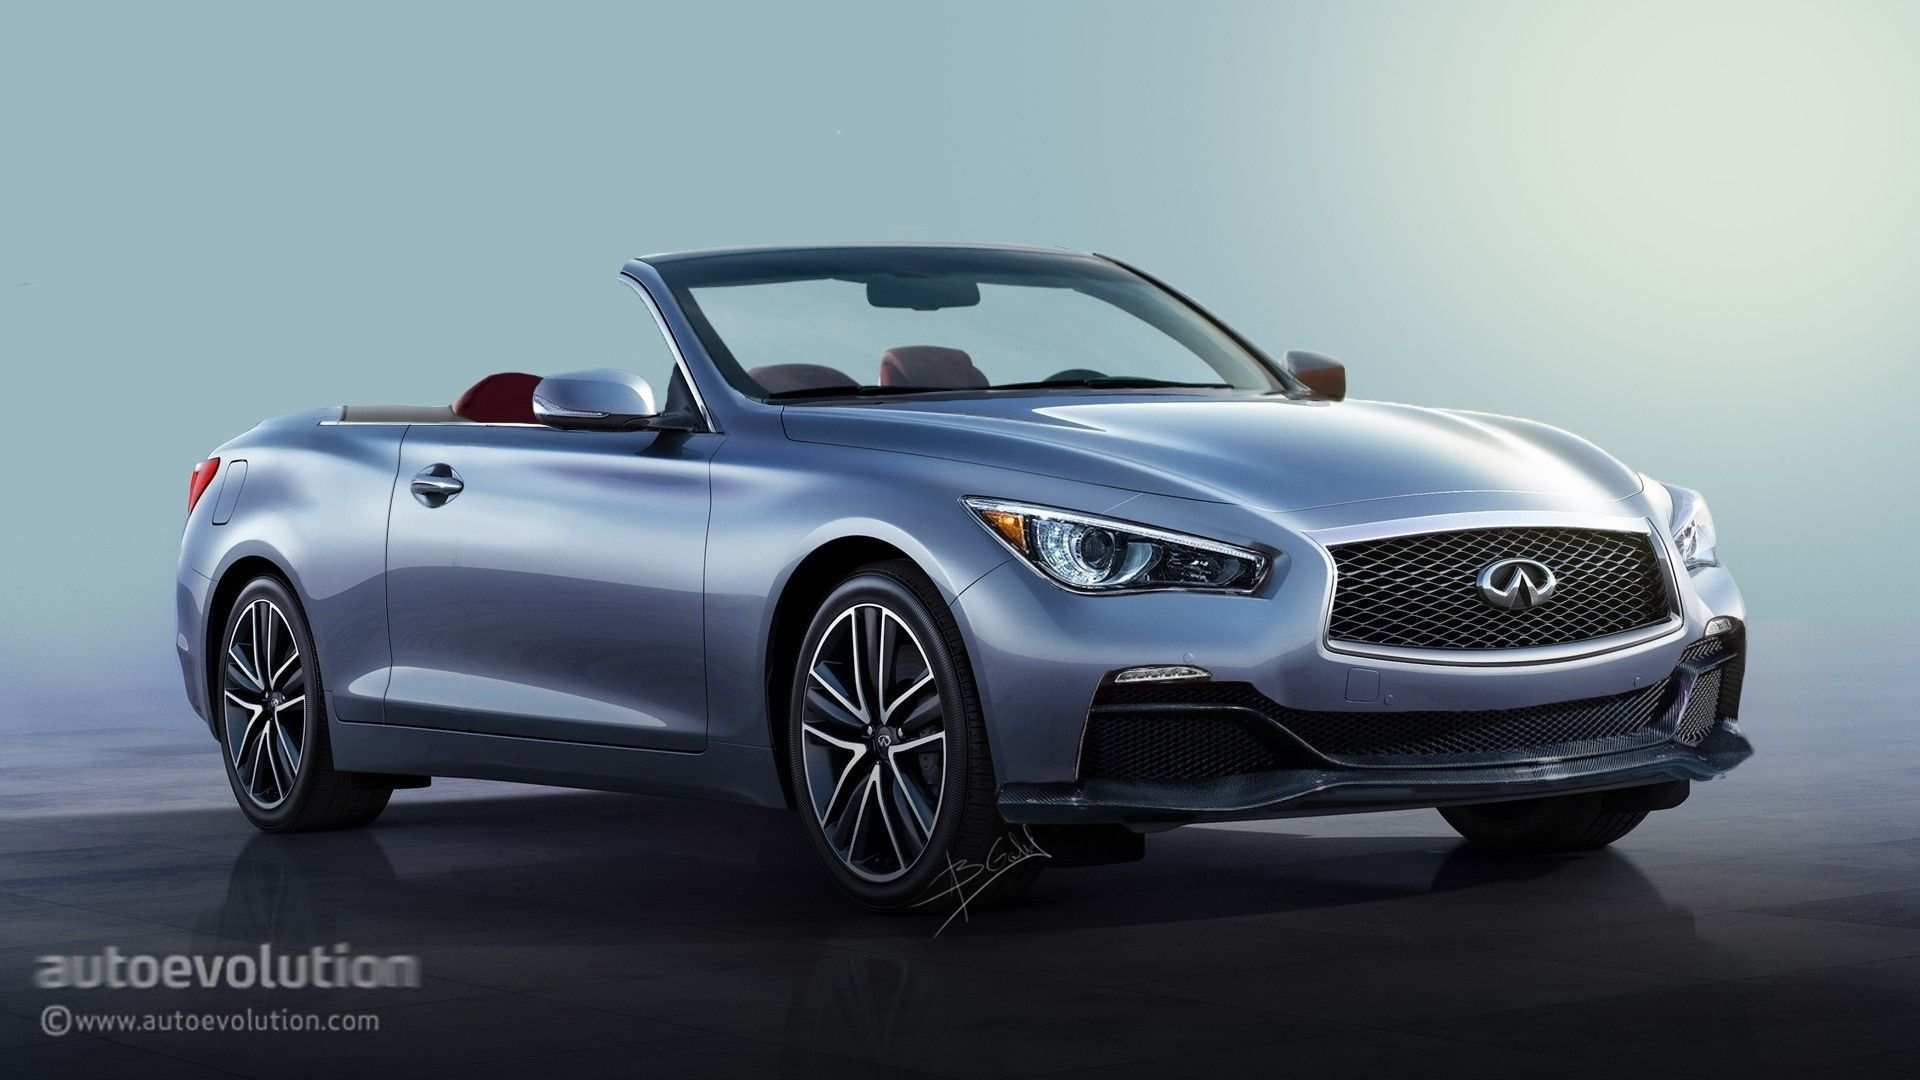 88 New 2019 Infiniti Q60 Coupe Ipl Price Design And Review